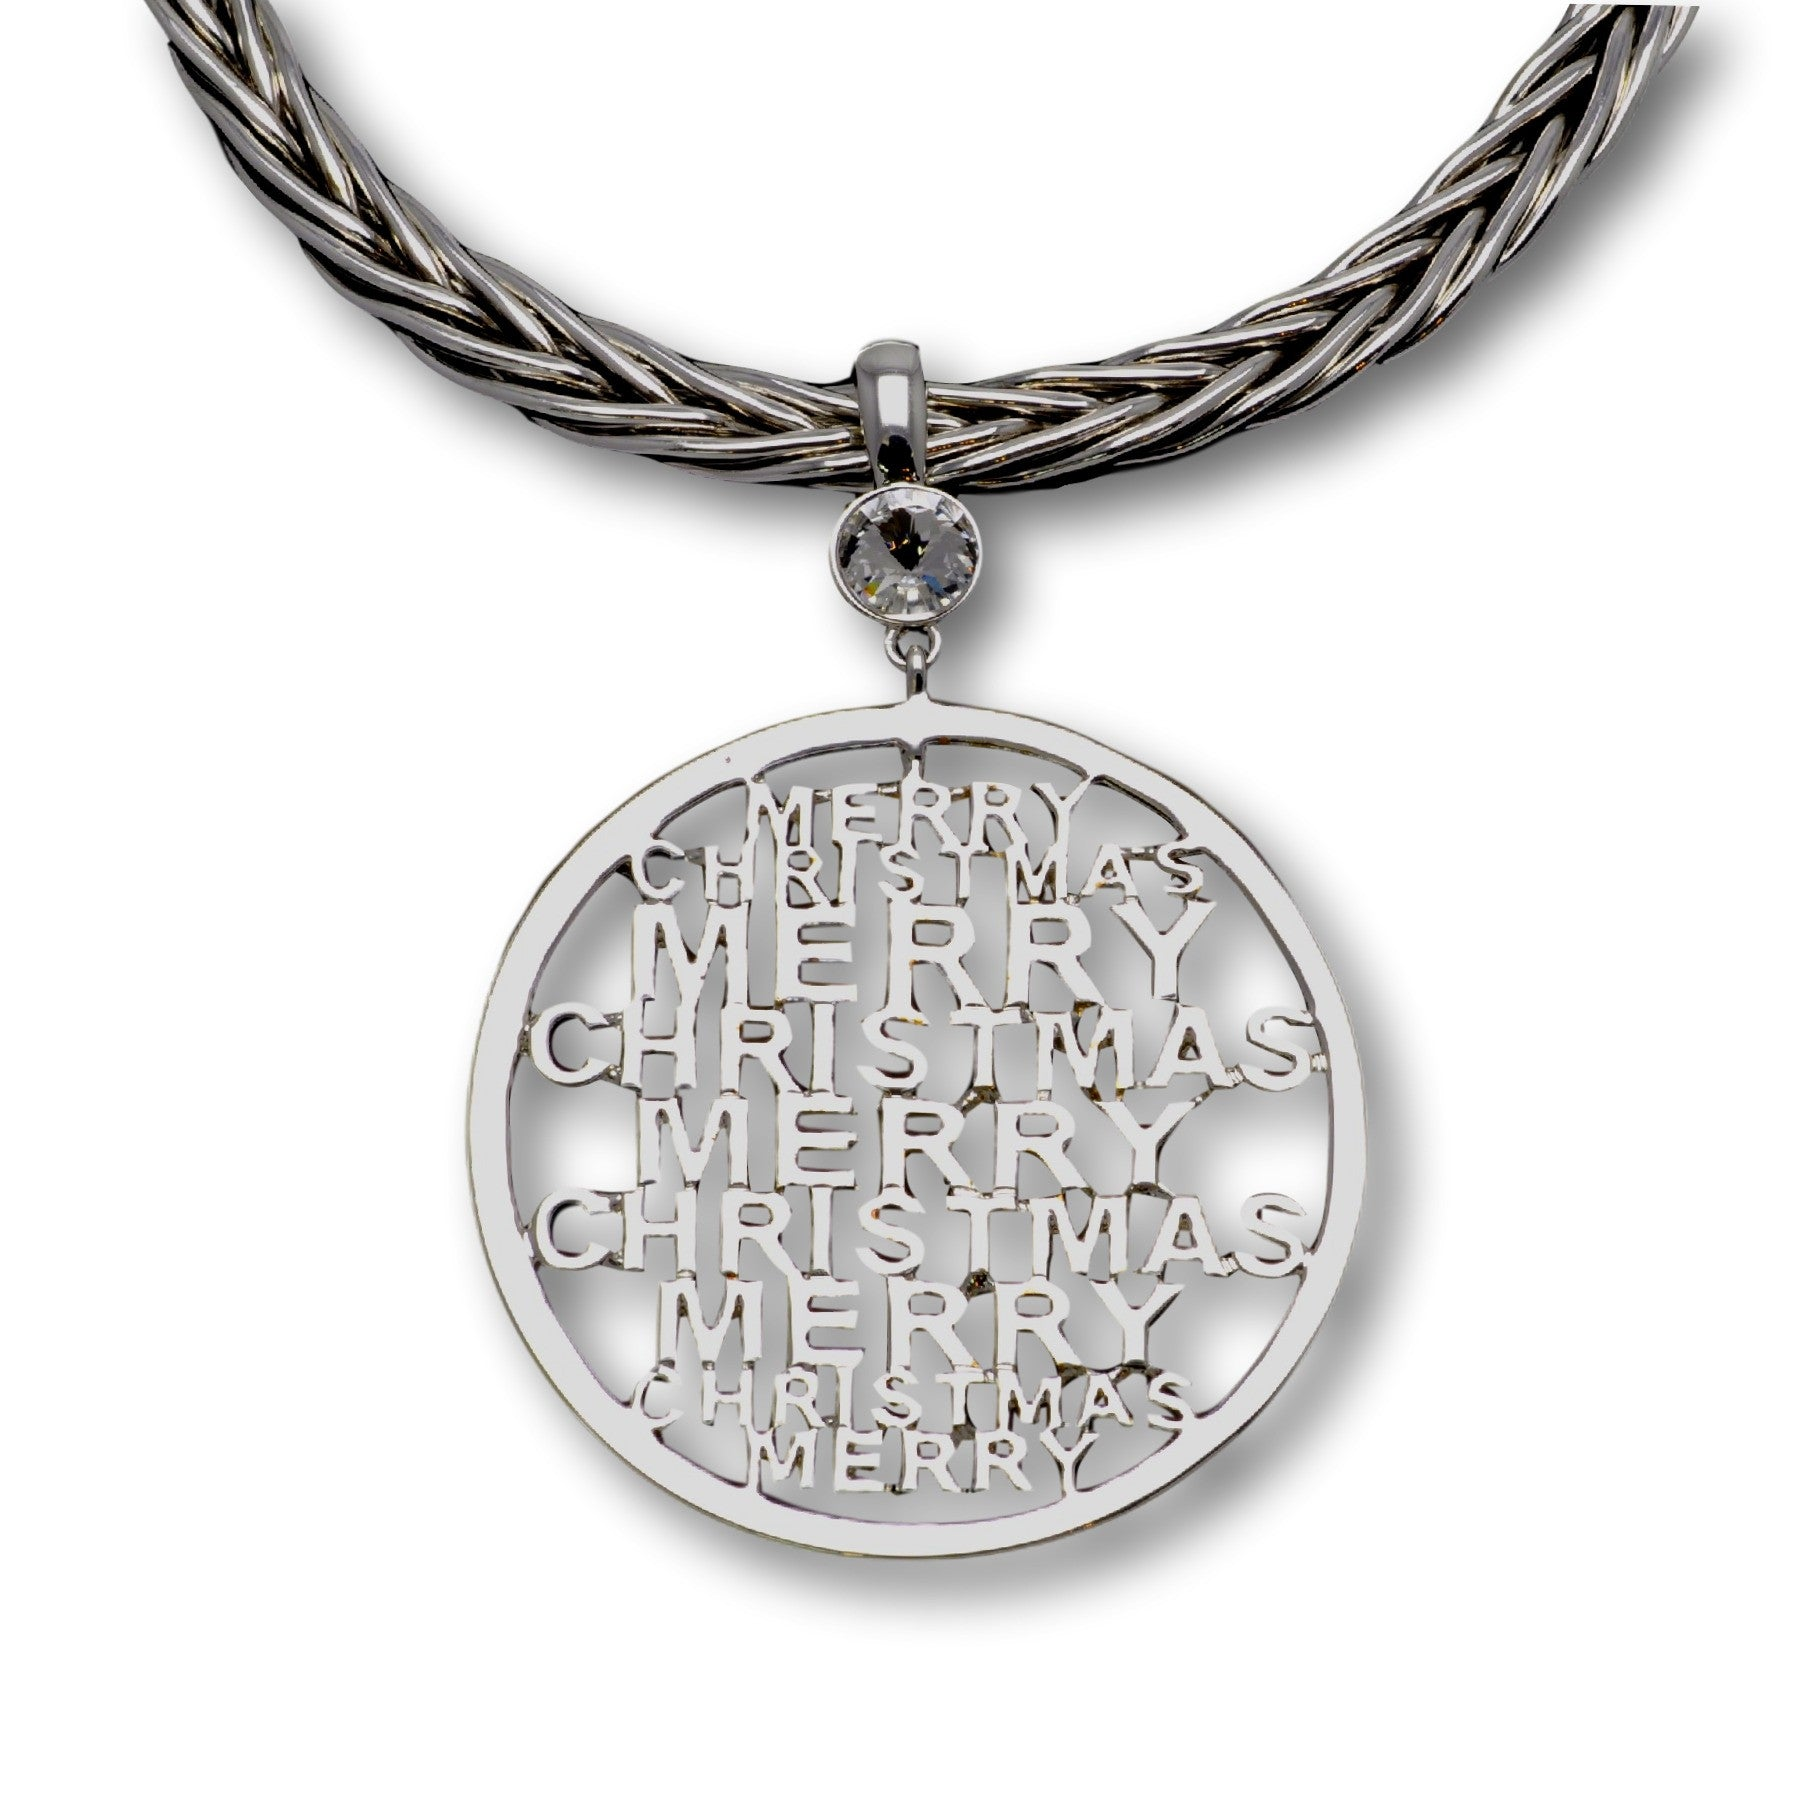 Merry Christmas Pendant (Silver)